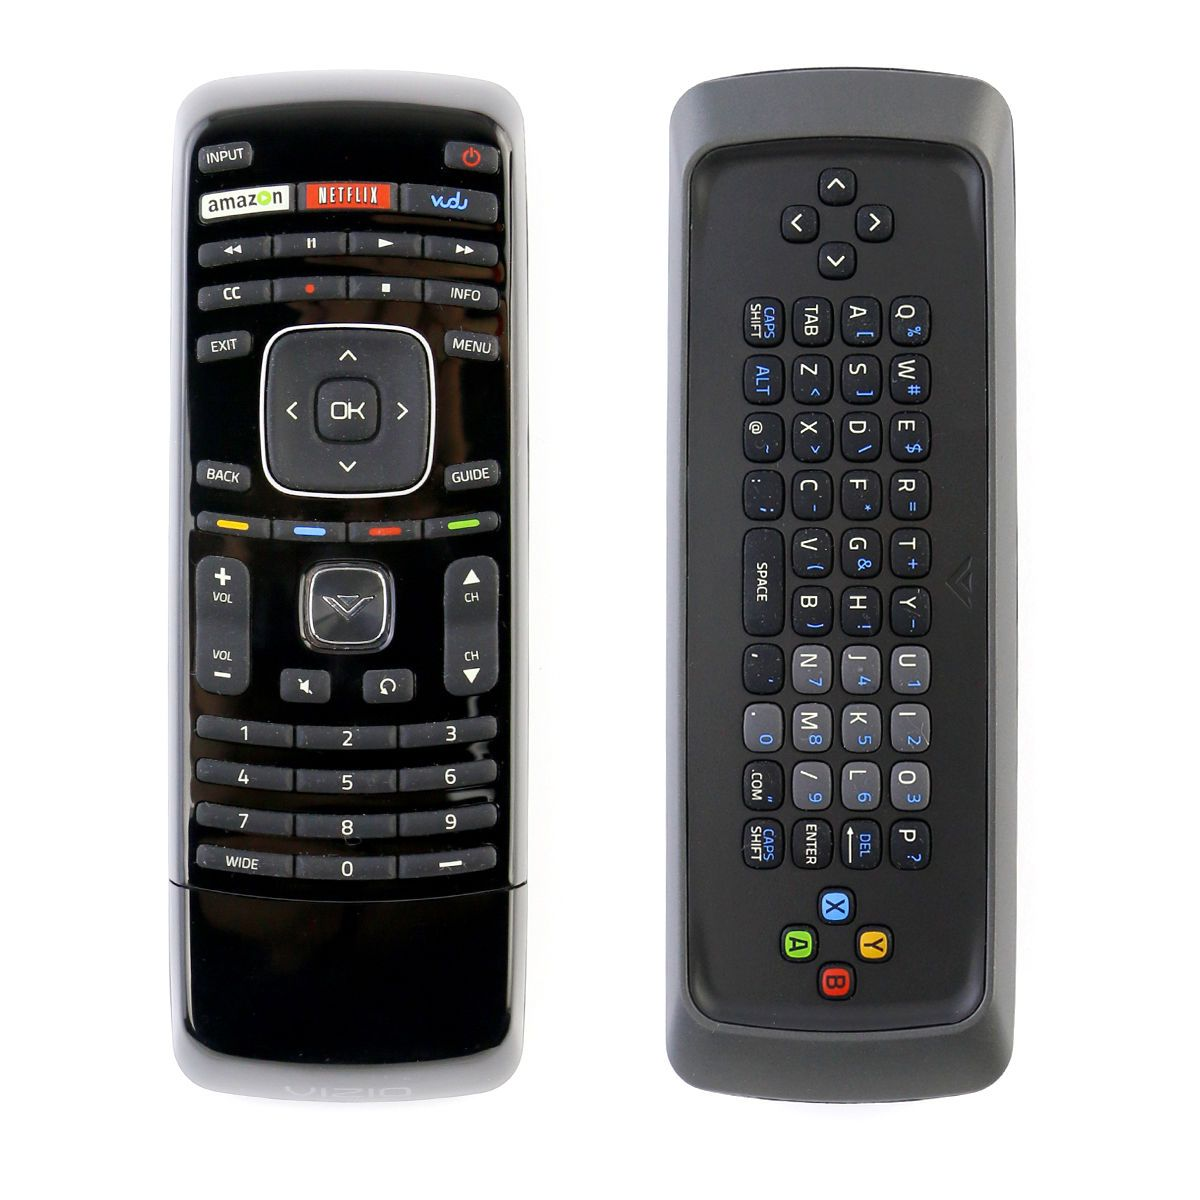 New XRT300 Qwerty Keyboard Remote Control with Vudu for